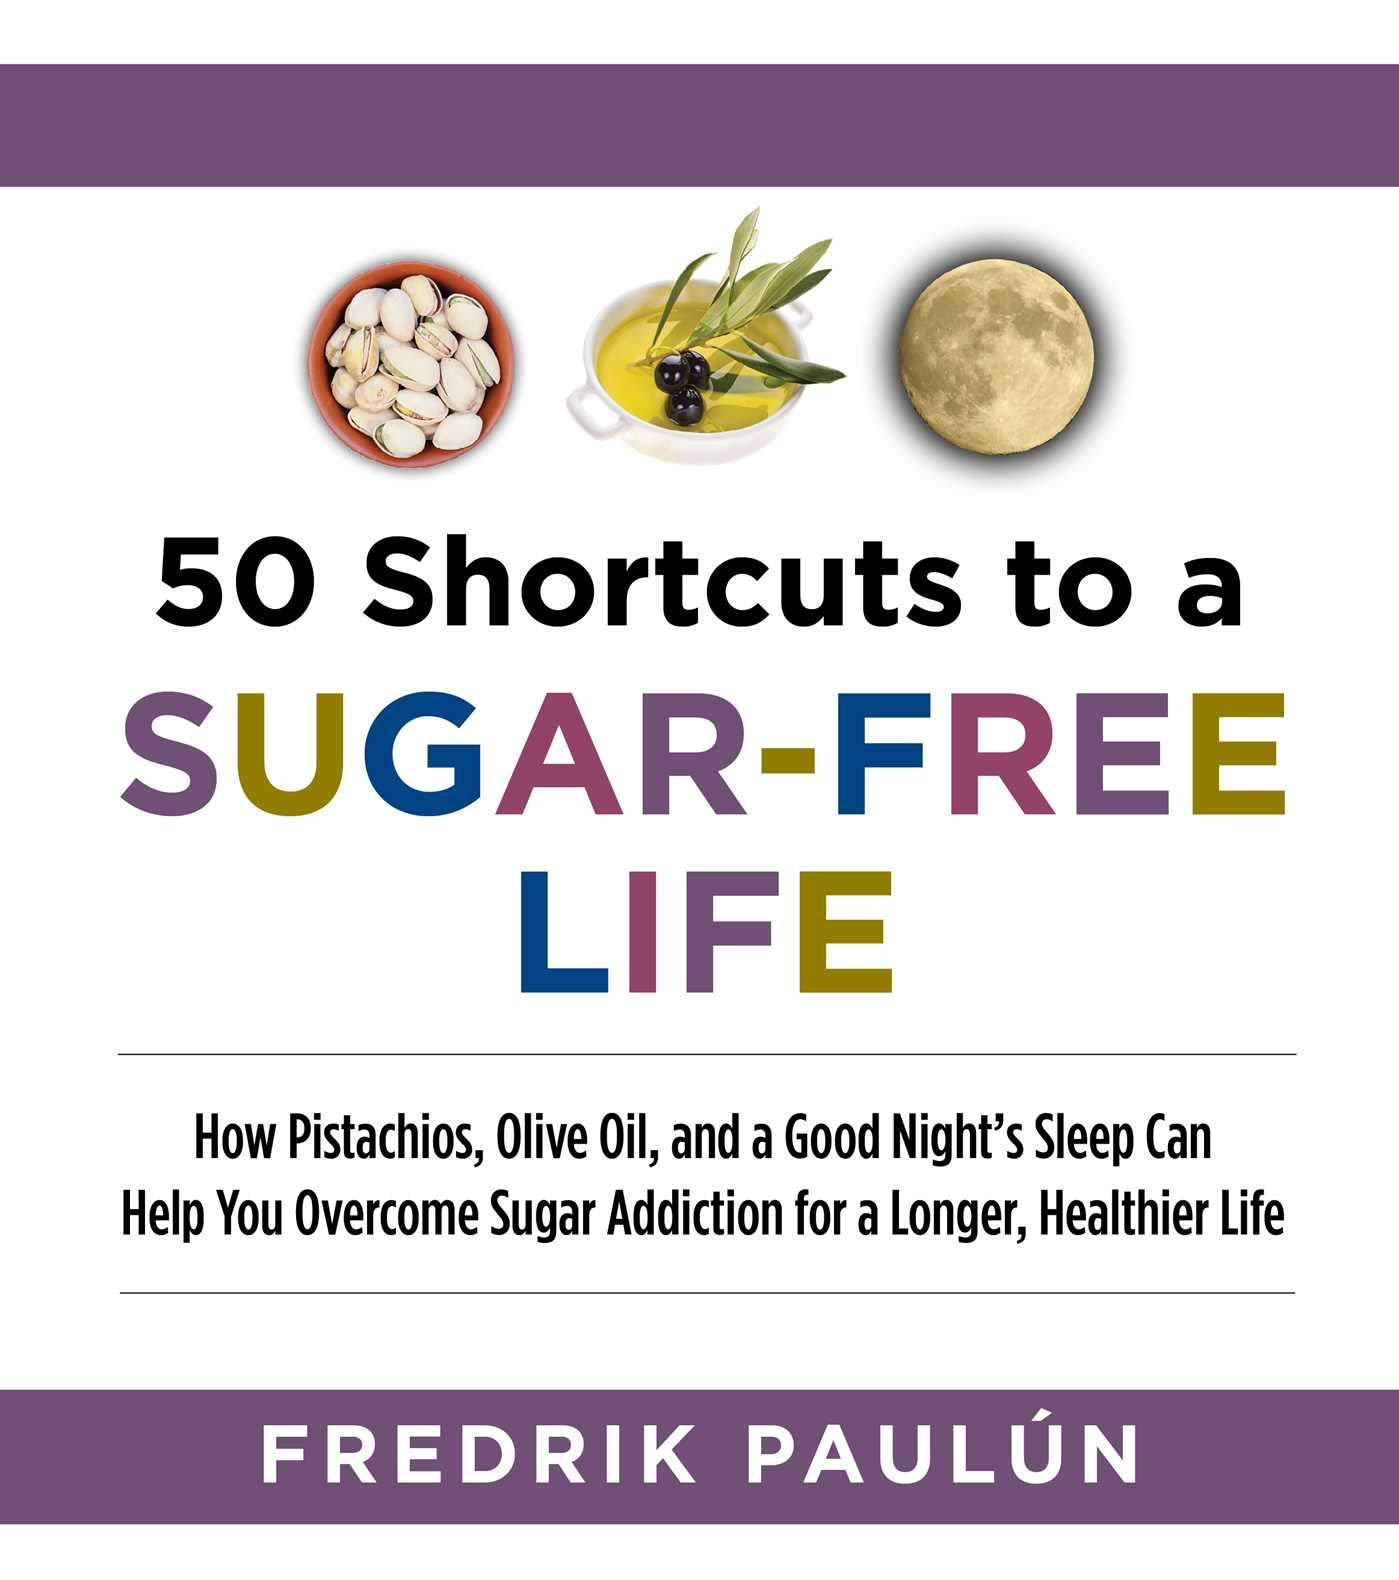 Image Of50 Shortcuts To A Sugar-Free Life: How Pistachios, Olive Oil, And A Good Night's Sleep Can Help You Overcome Sugar Addicti...